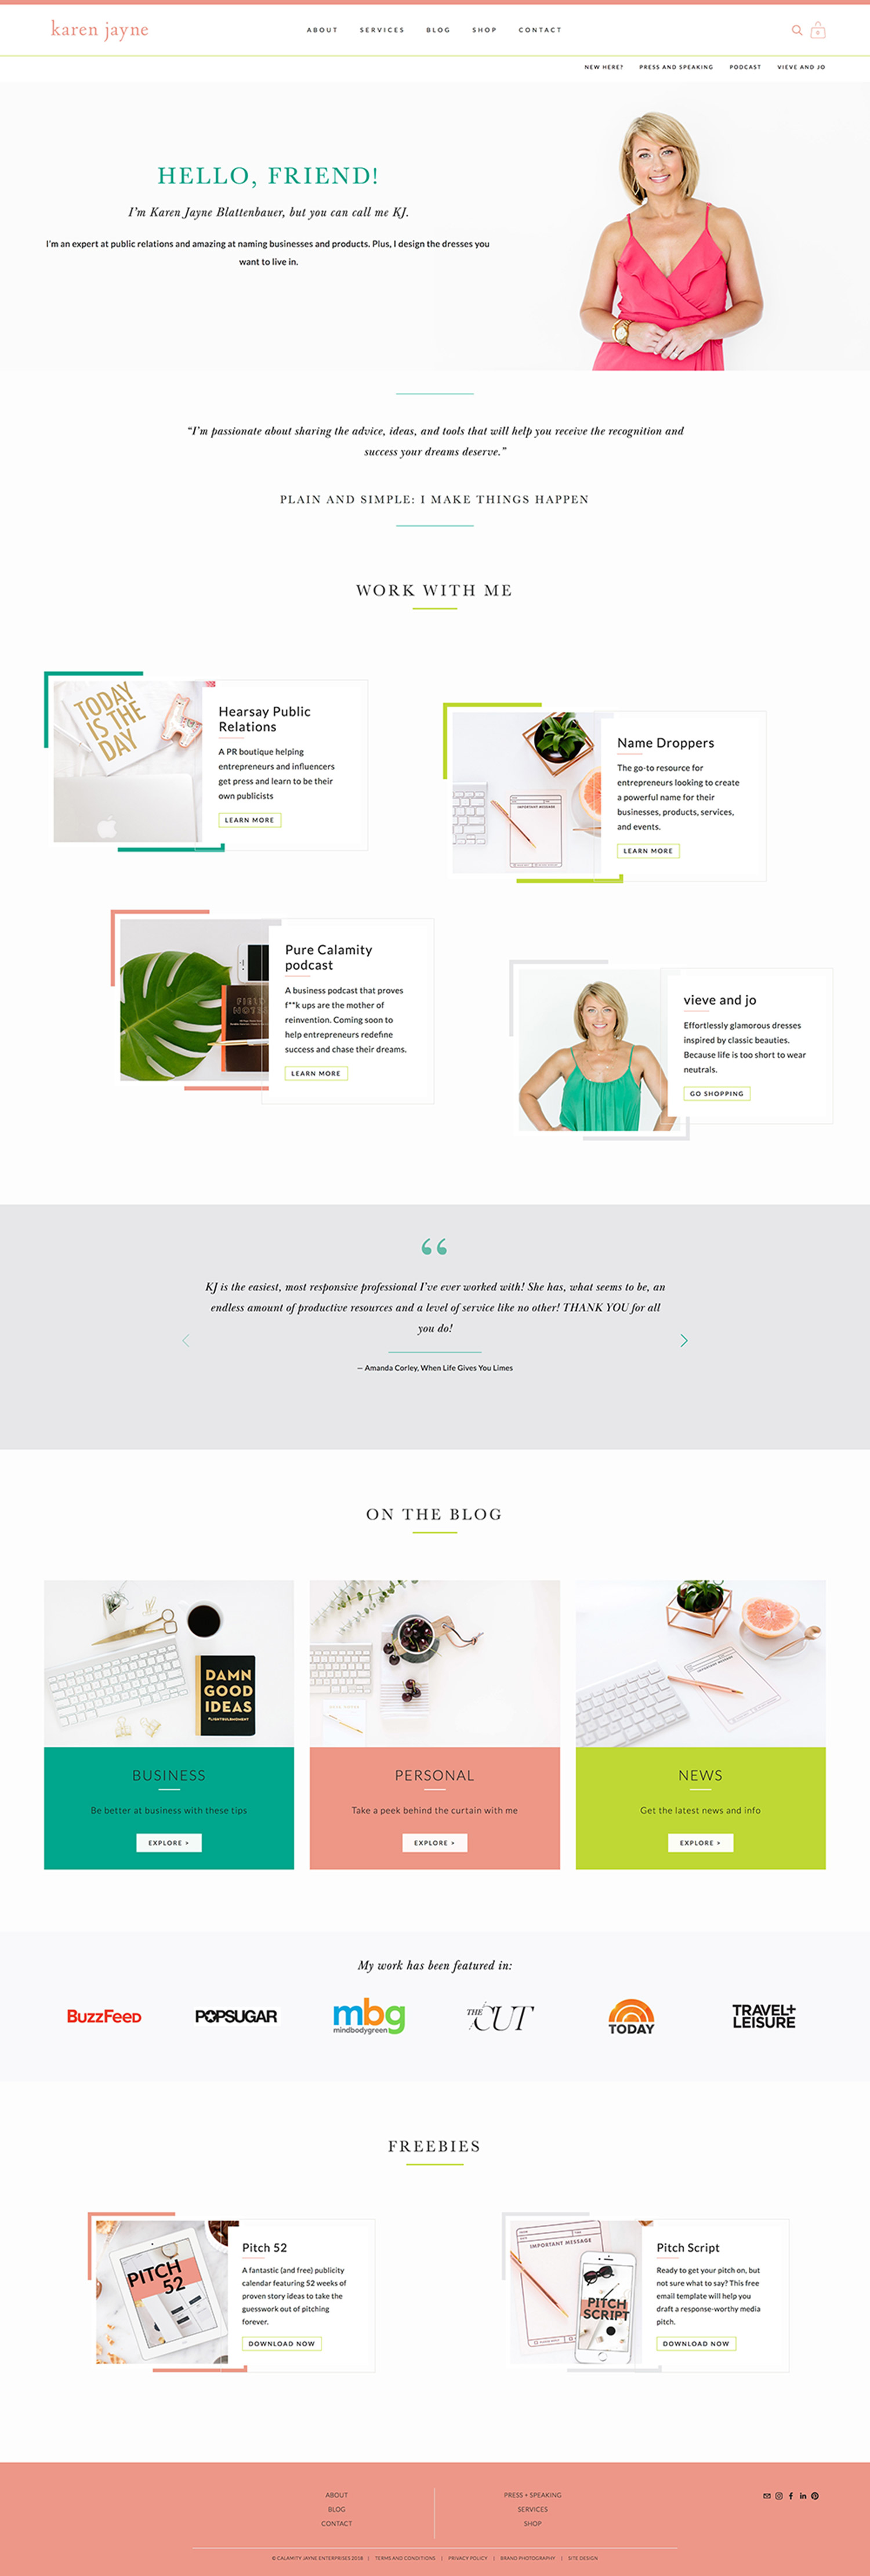 KJ Blattenbauer Home page | Squarespace web site for a business strategist and PR expert | design by Jodi Neufeld Design